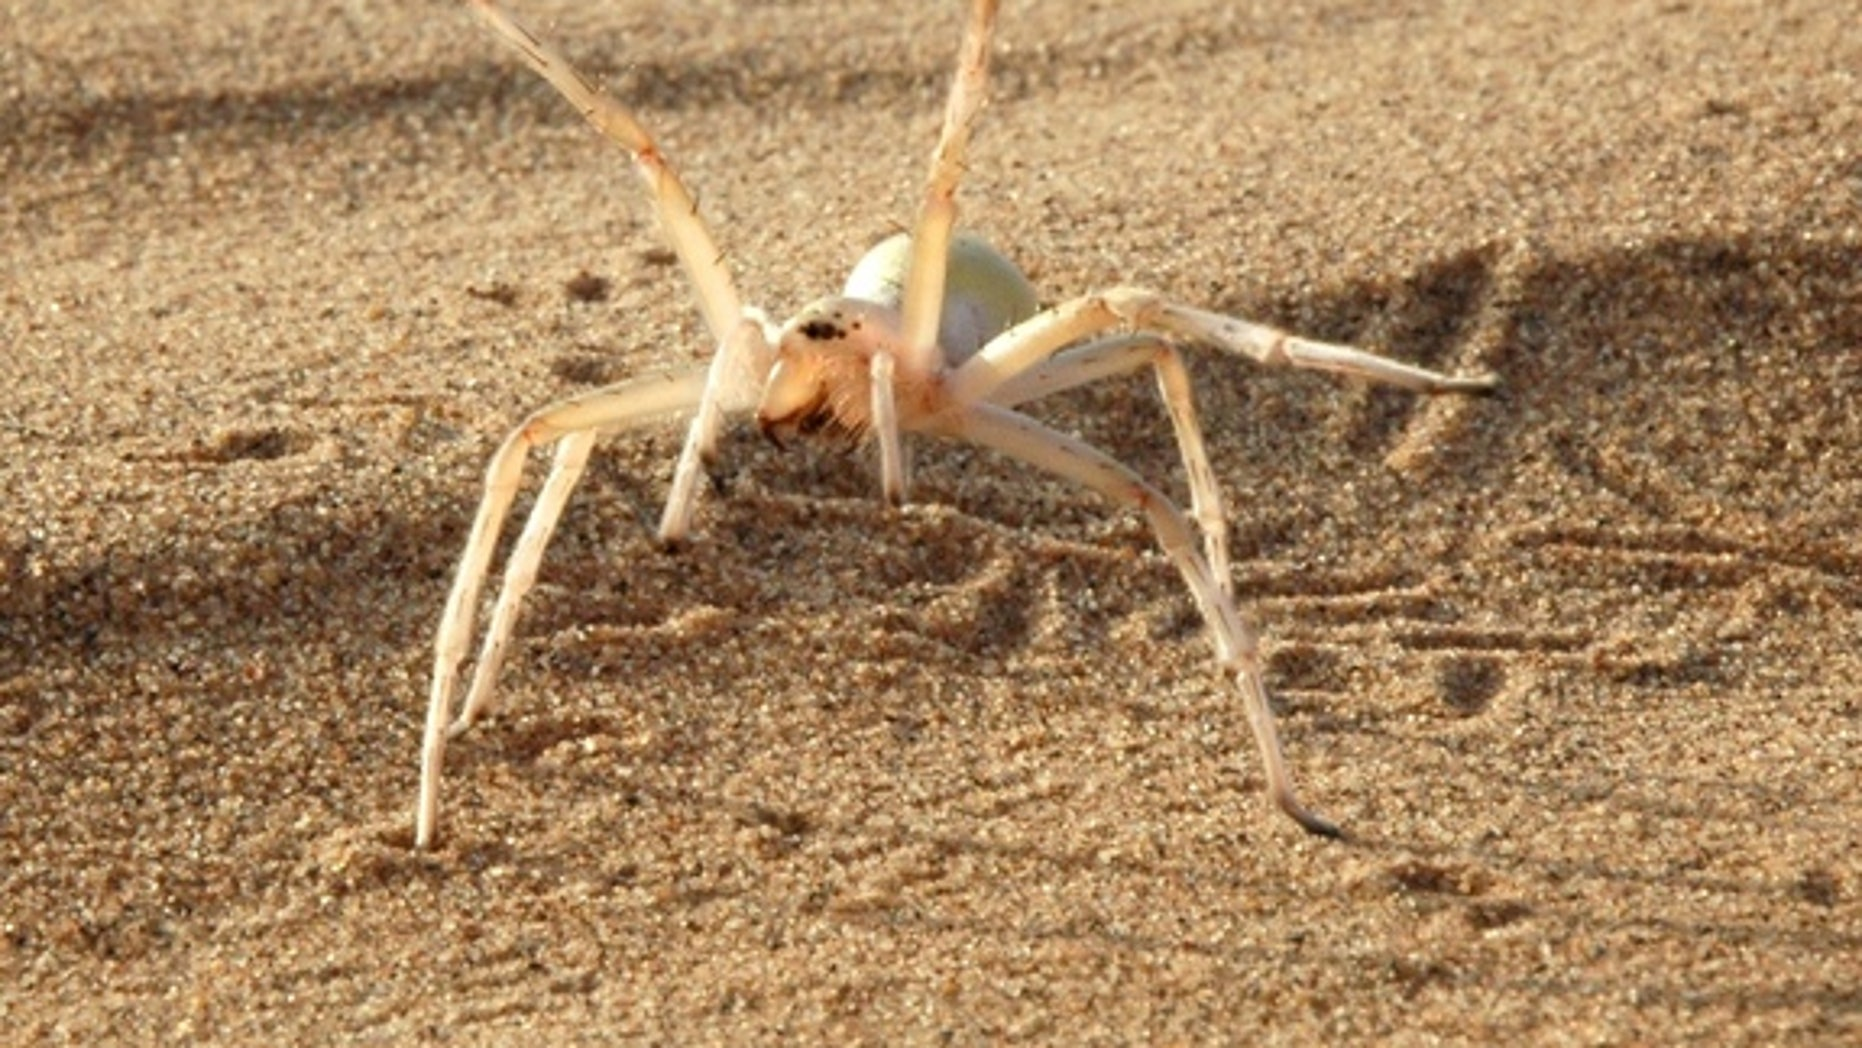 This agile spider (<em>Cebrennus rechenbergi</em>) cartwheels its way out of danger.